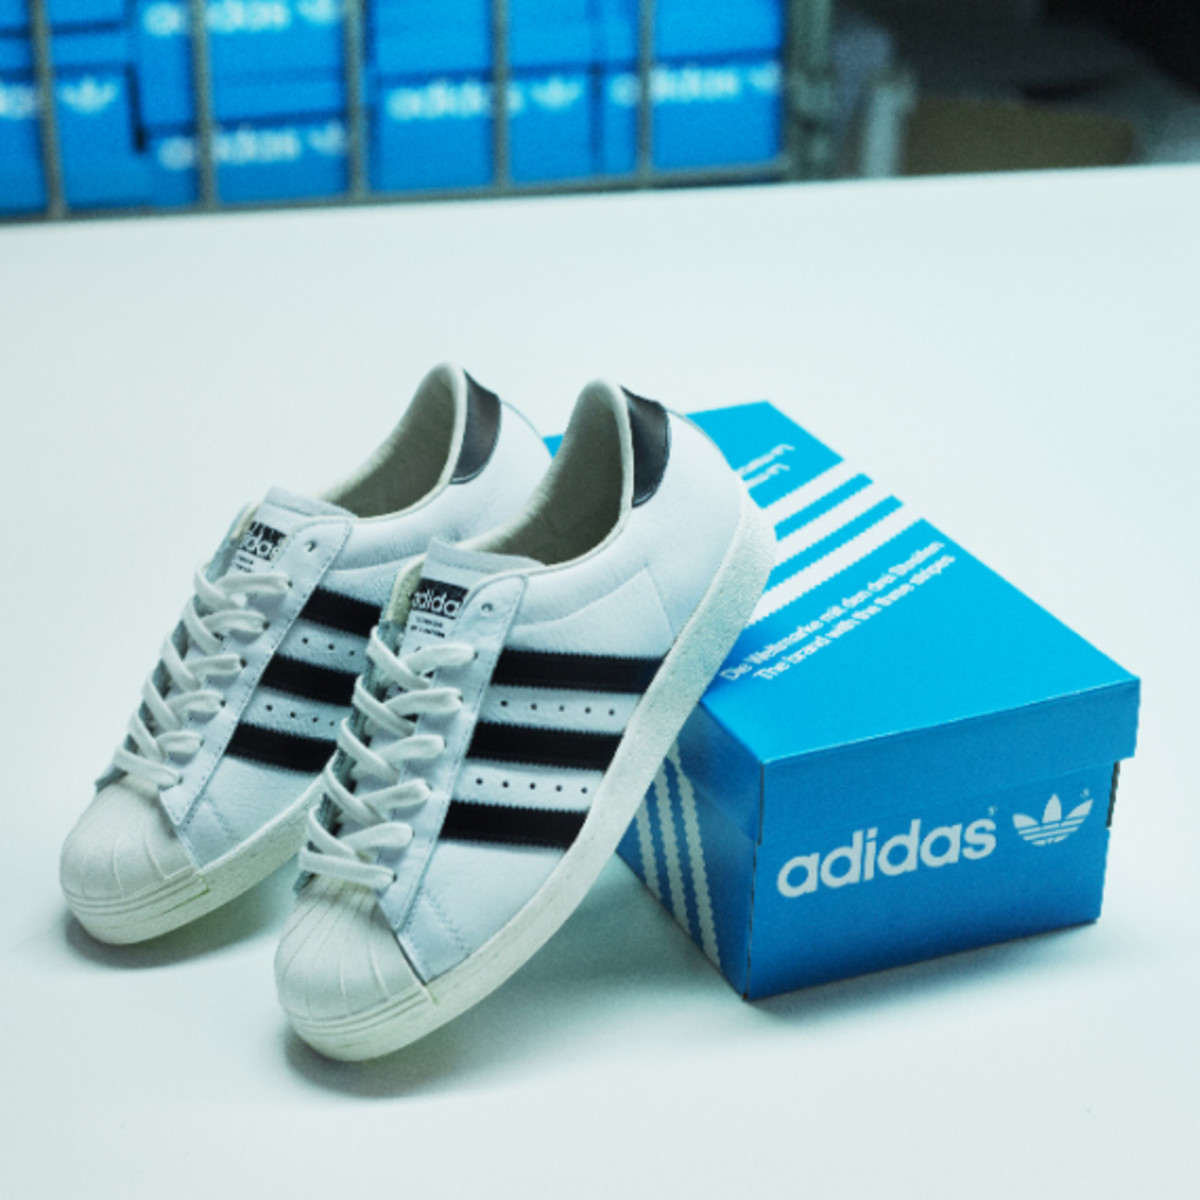 adidas-consortium-superstar-made-in-france-02